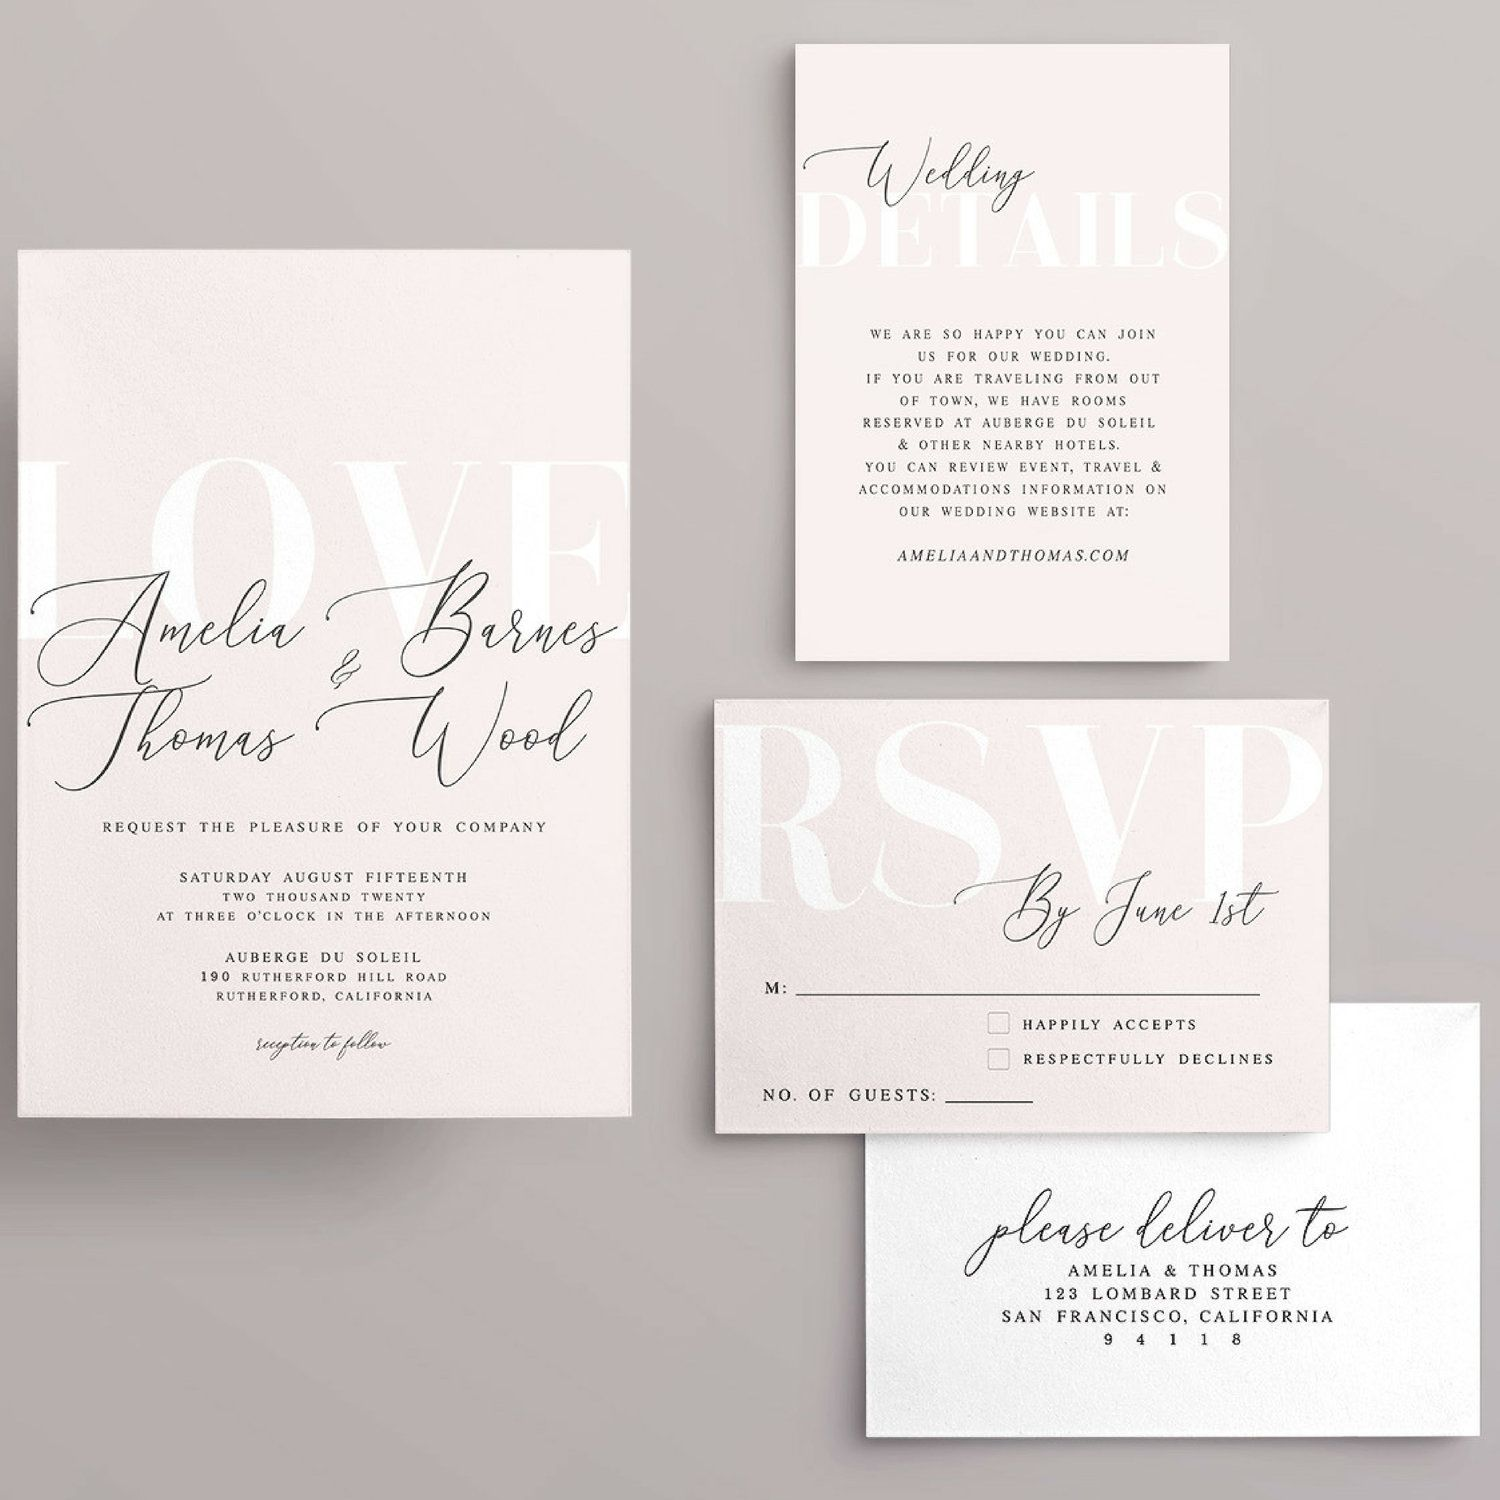 How to Word Your Wedding Invitations (Plus 12 Wedding